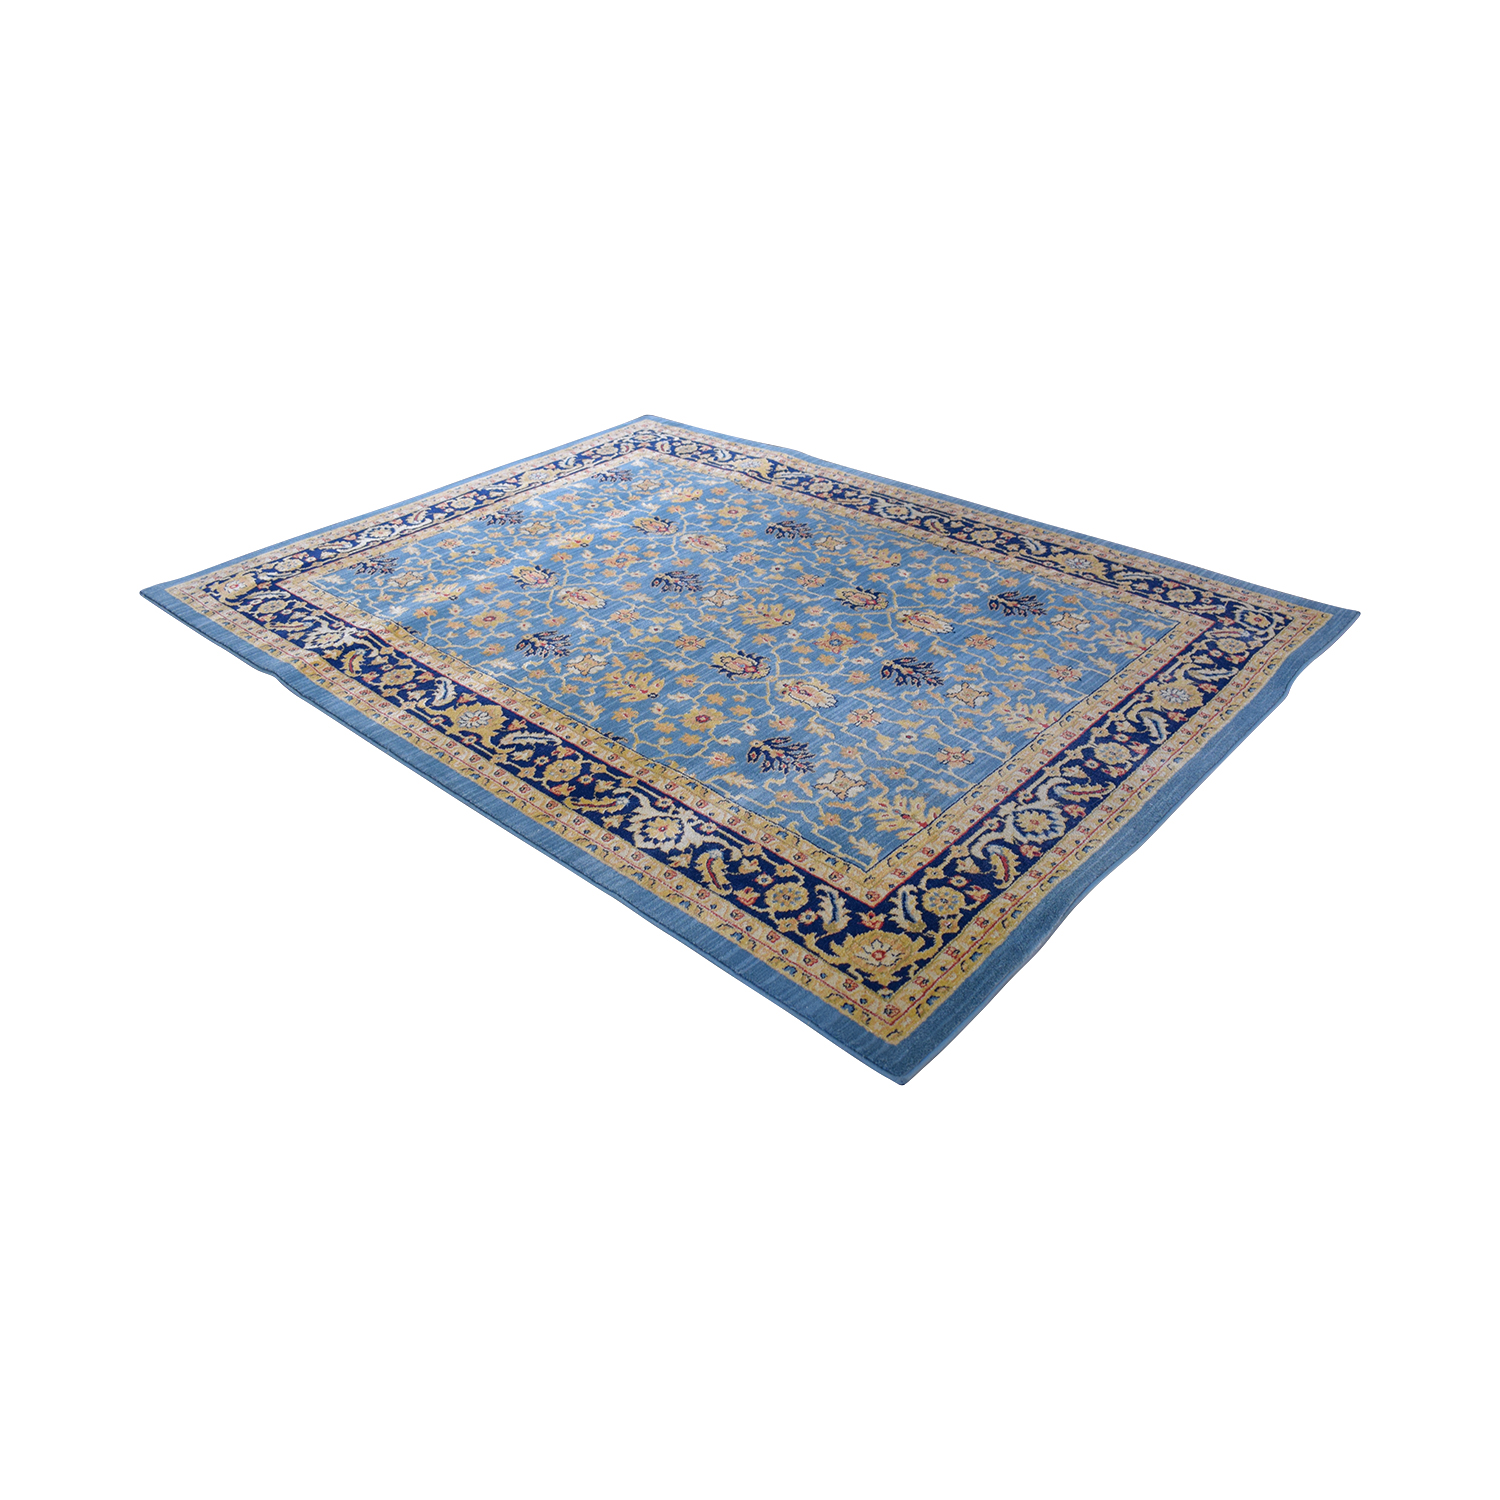 Safavieh Safavieh Light Blue and Navy Rug